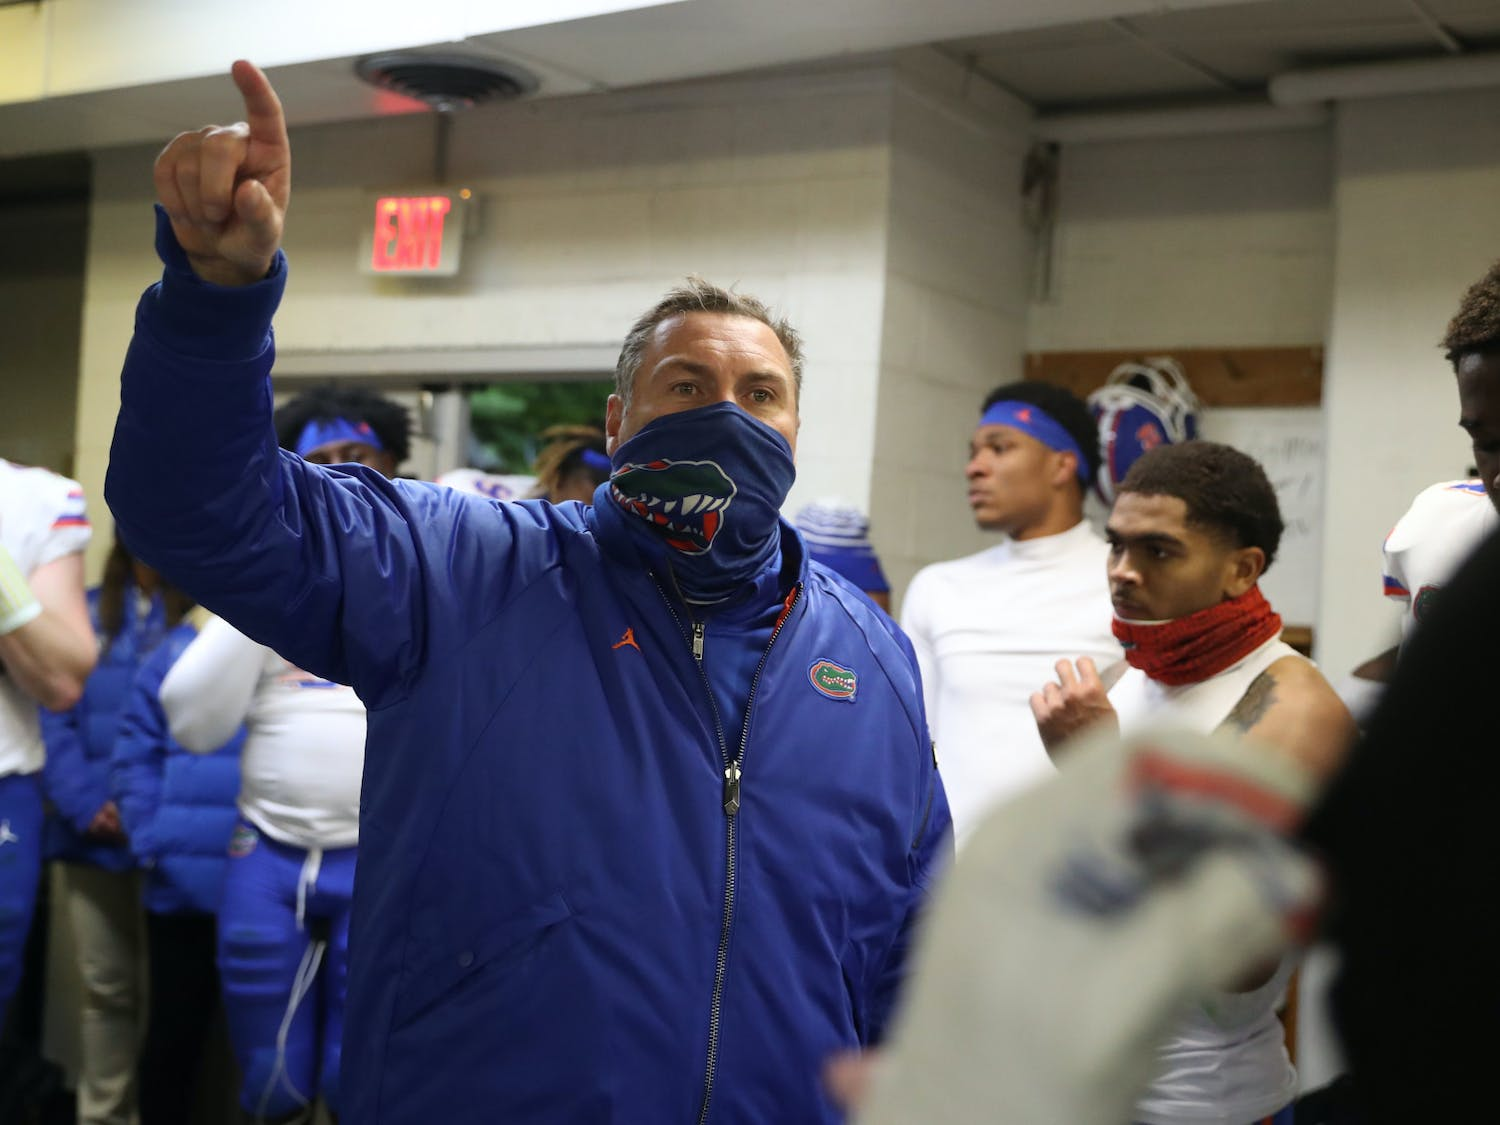 Gators coach Dan Mullen in the visiting locker room after Florida's game against the Tennessee Volunteers on Saturday, Dec. 5, 2020 at Neyland Stadium in Knoxville, Tennessee.